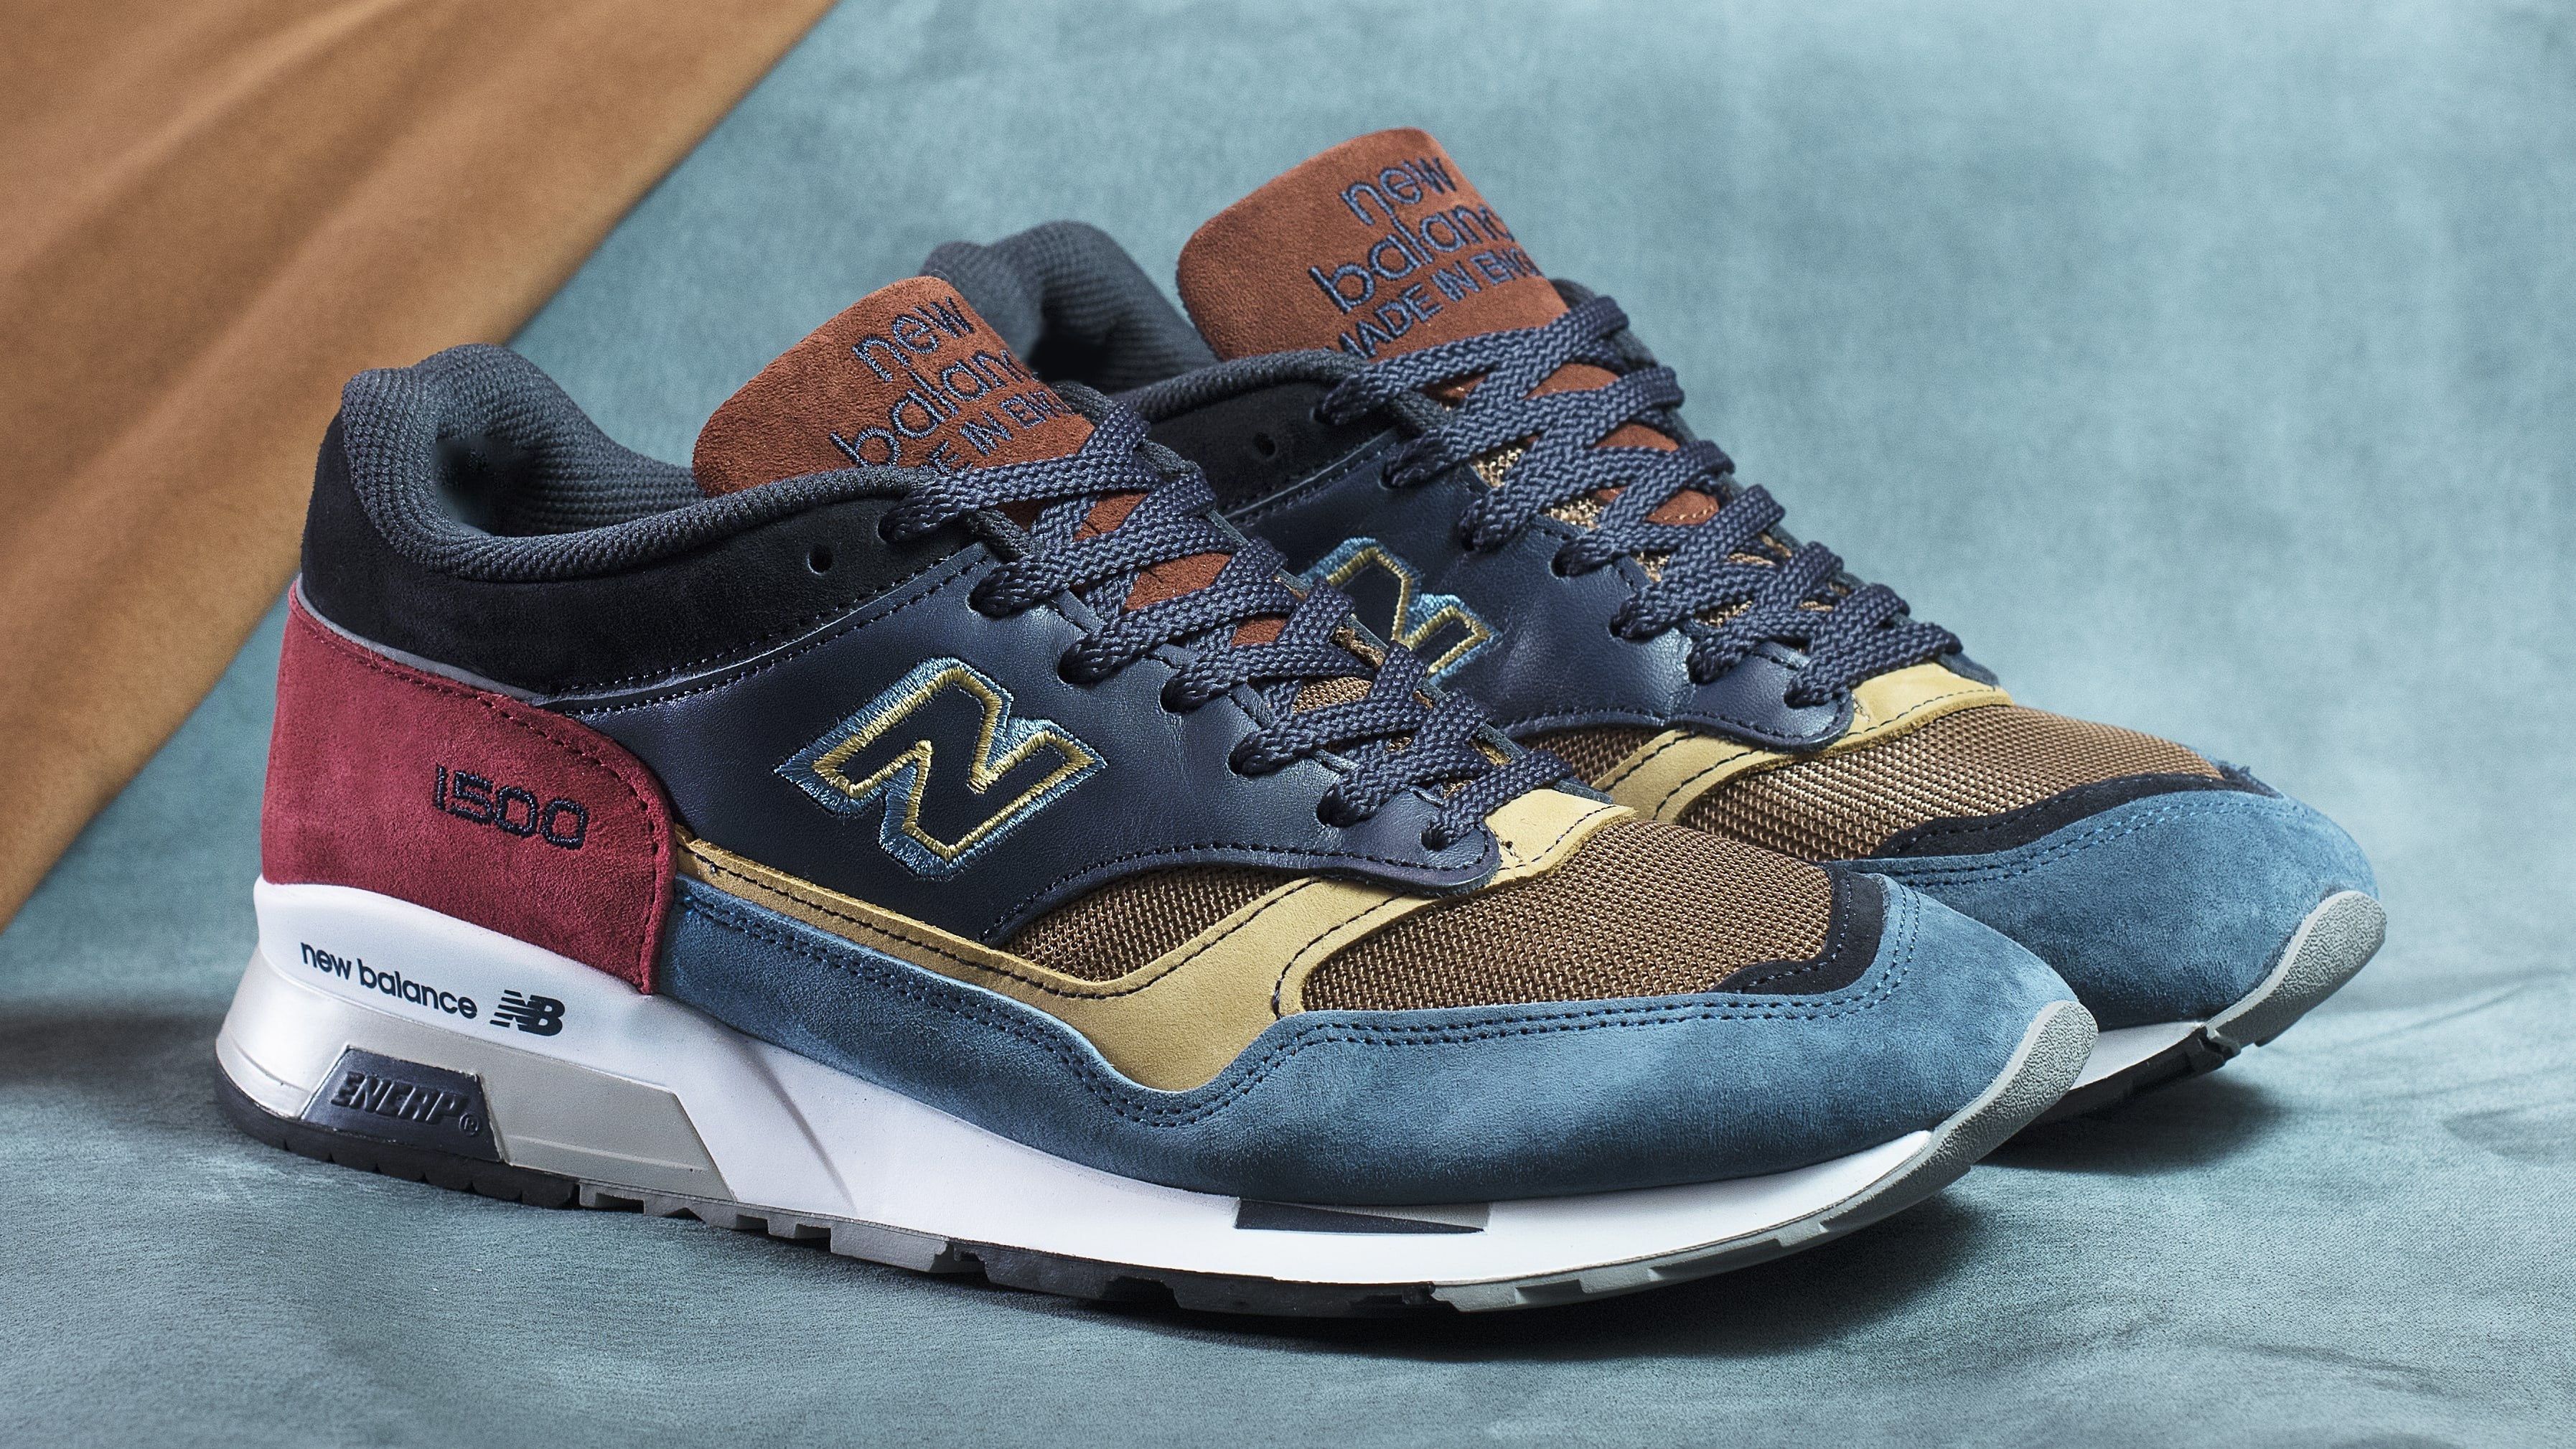 new balance 1500 uk yard